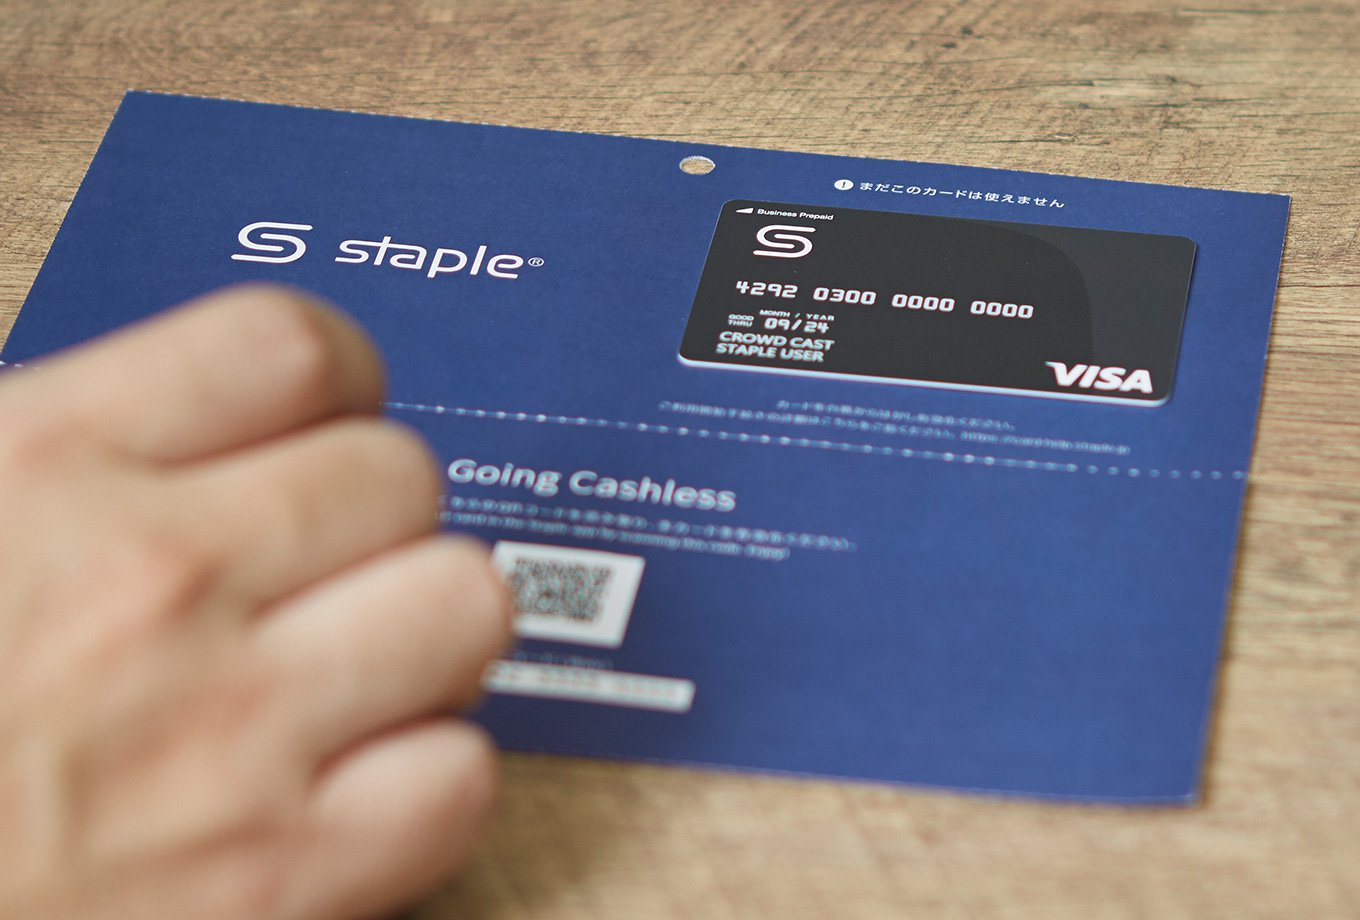 Crowdcast showing staple card_D-Article-2_Small Moneytree MT LINK case study interview